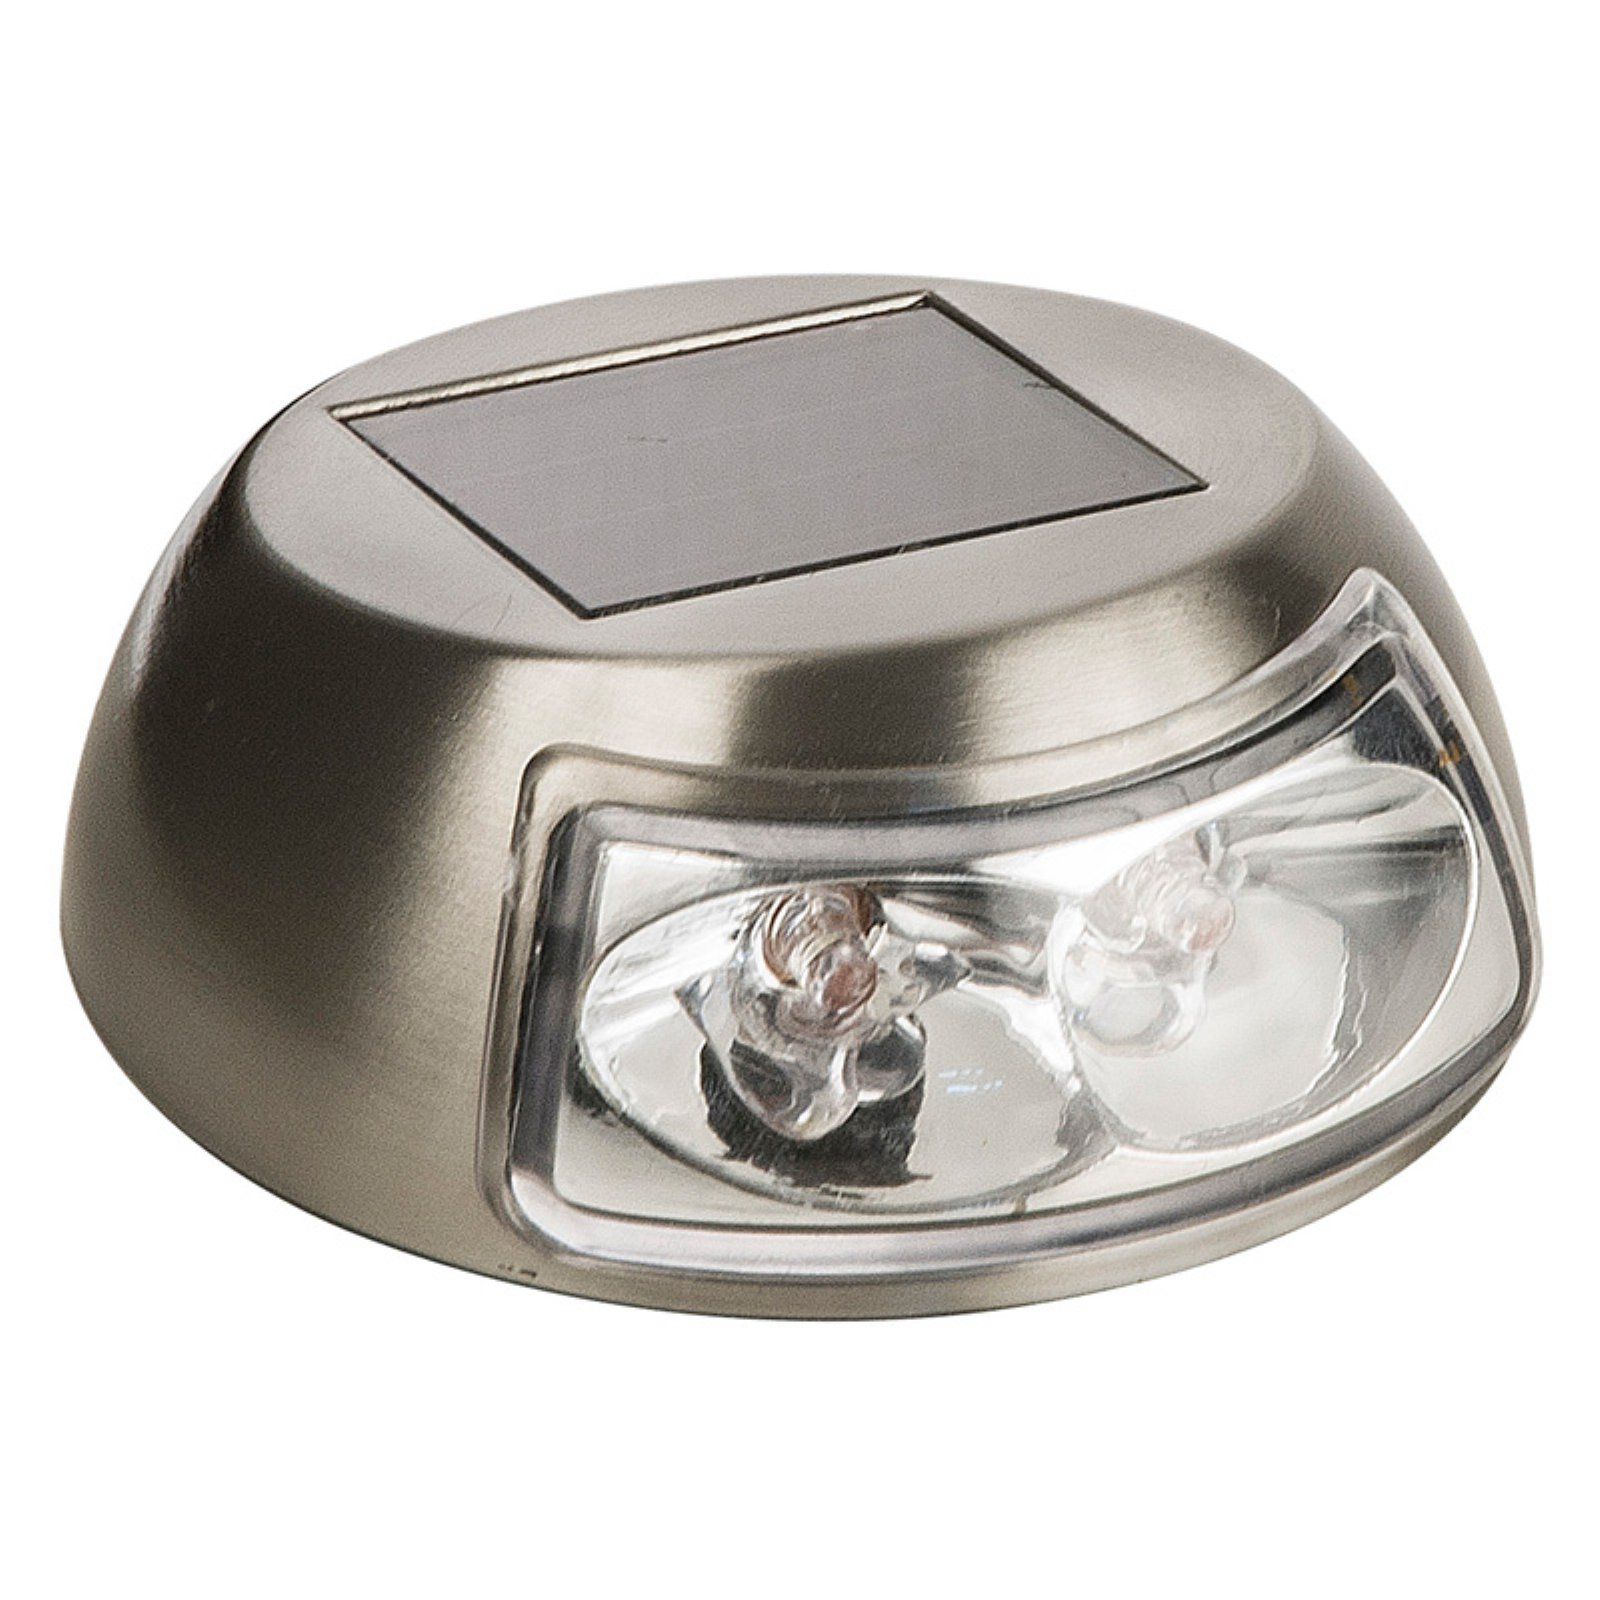 Paradise Garden Lighting Solar 2.4 Lumen Stainless Steel Deck Light